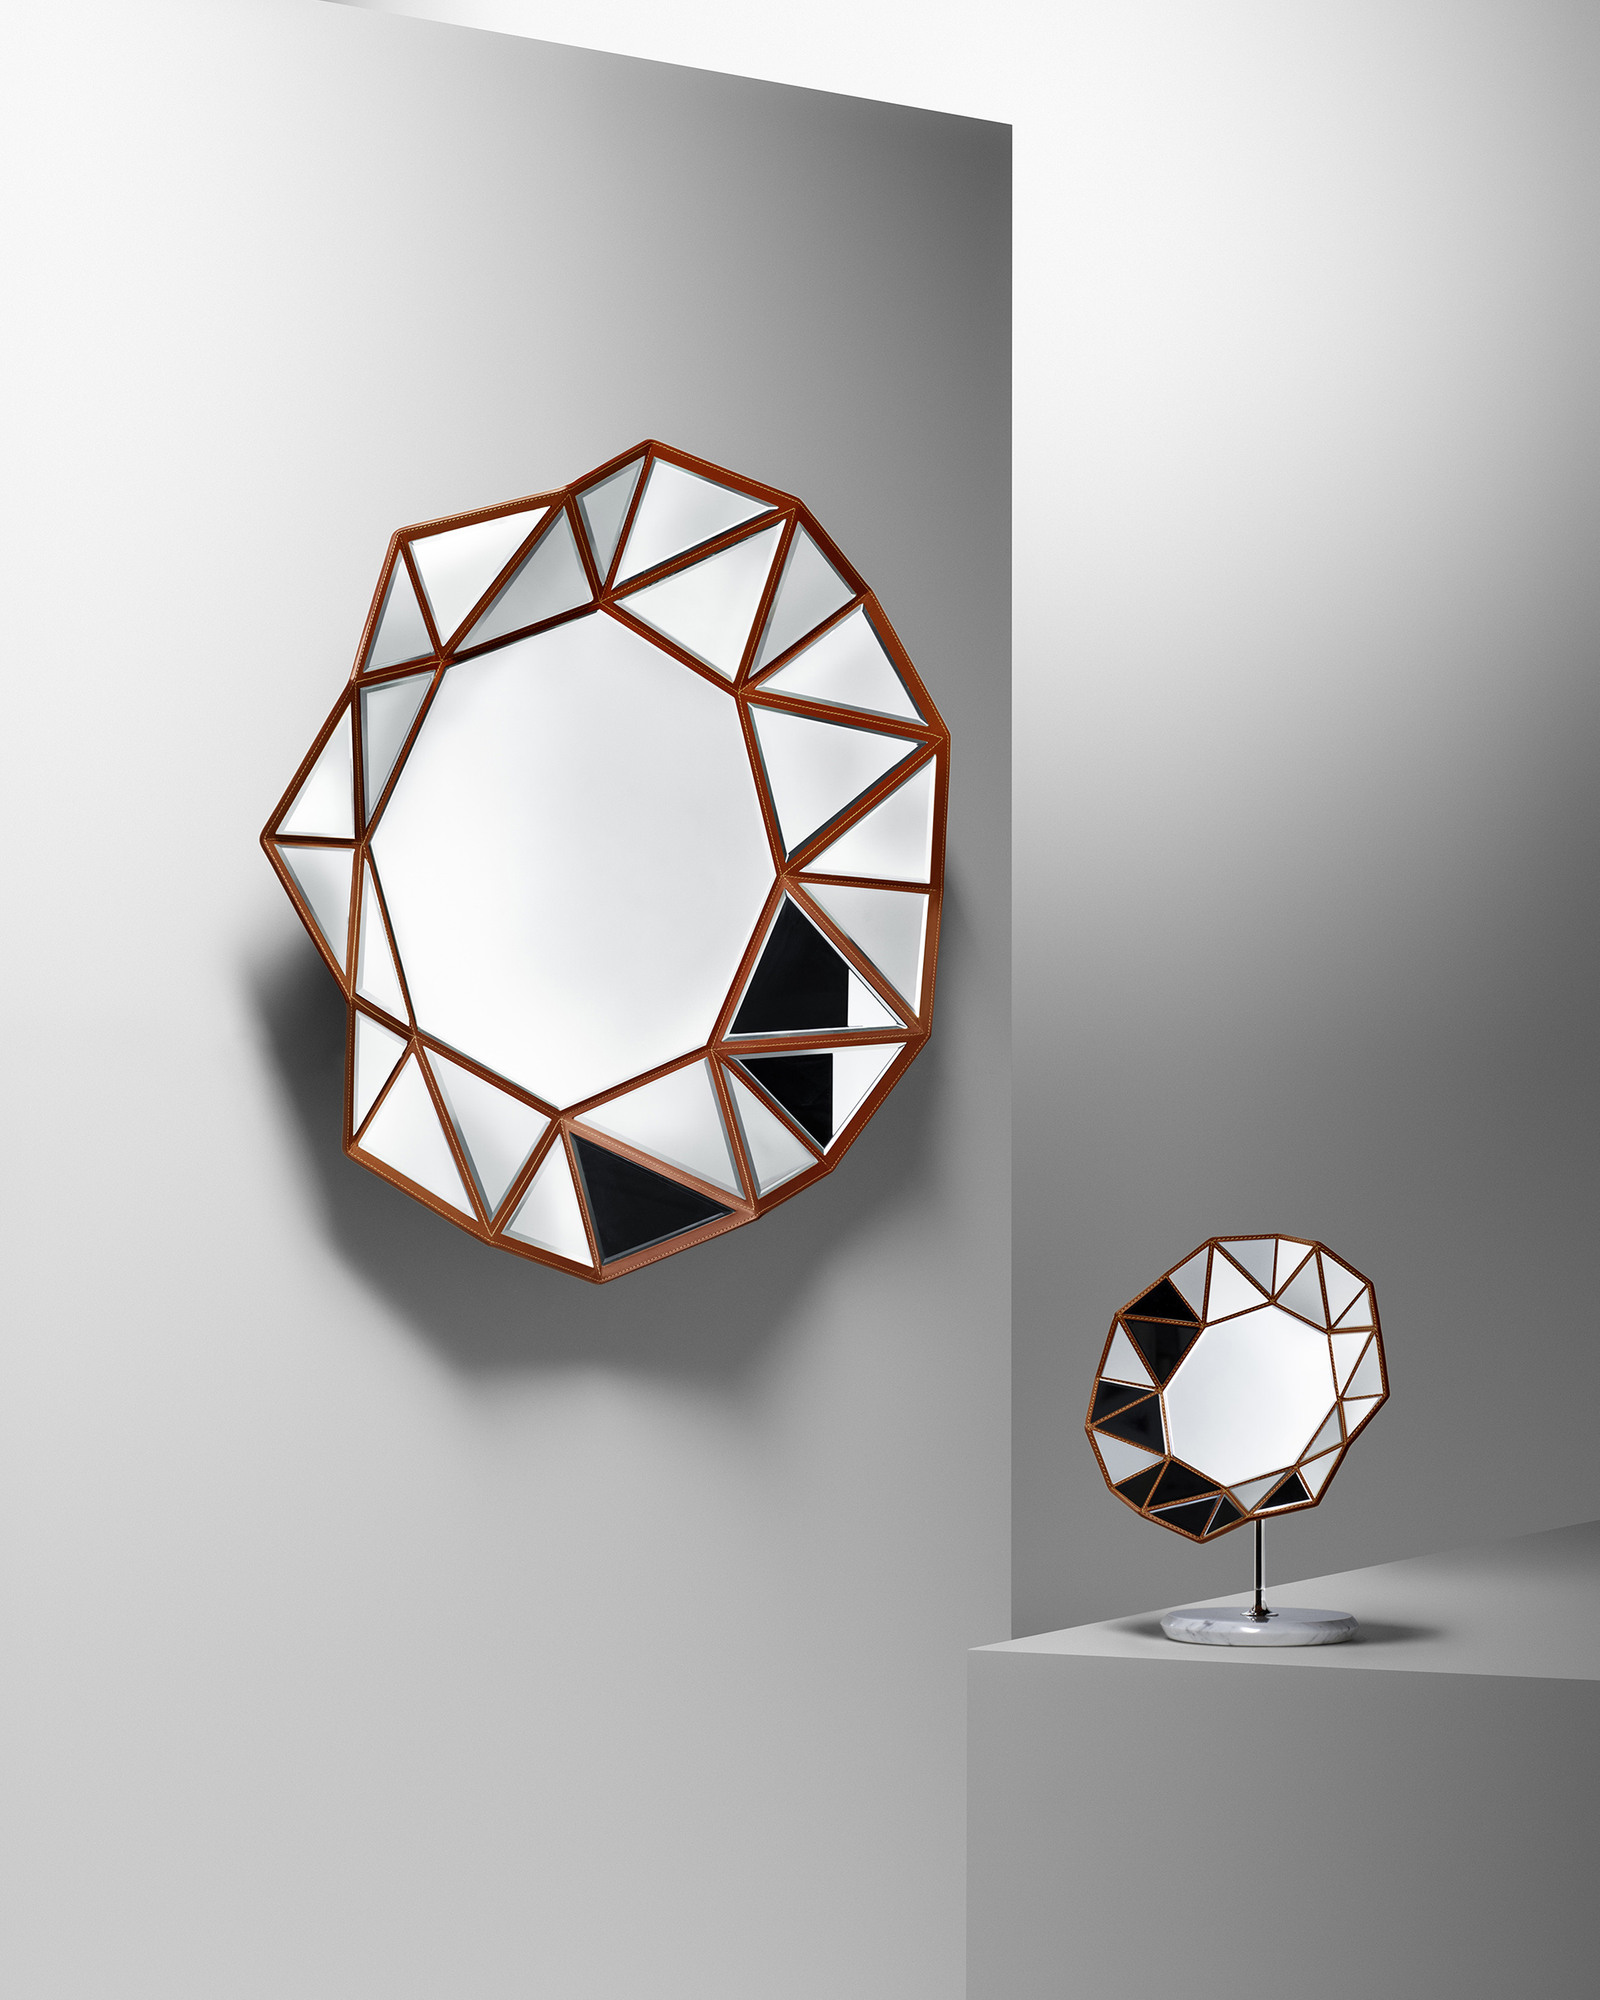 diamond_mirror_2_marcel_wanders-1600w